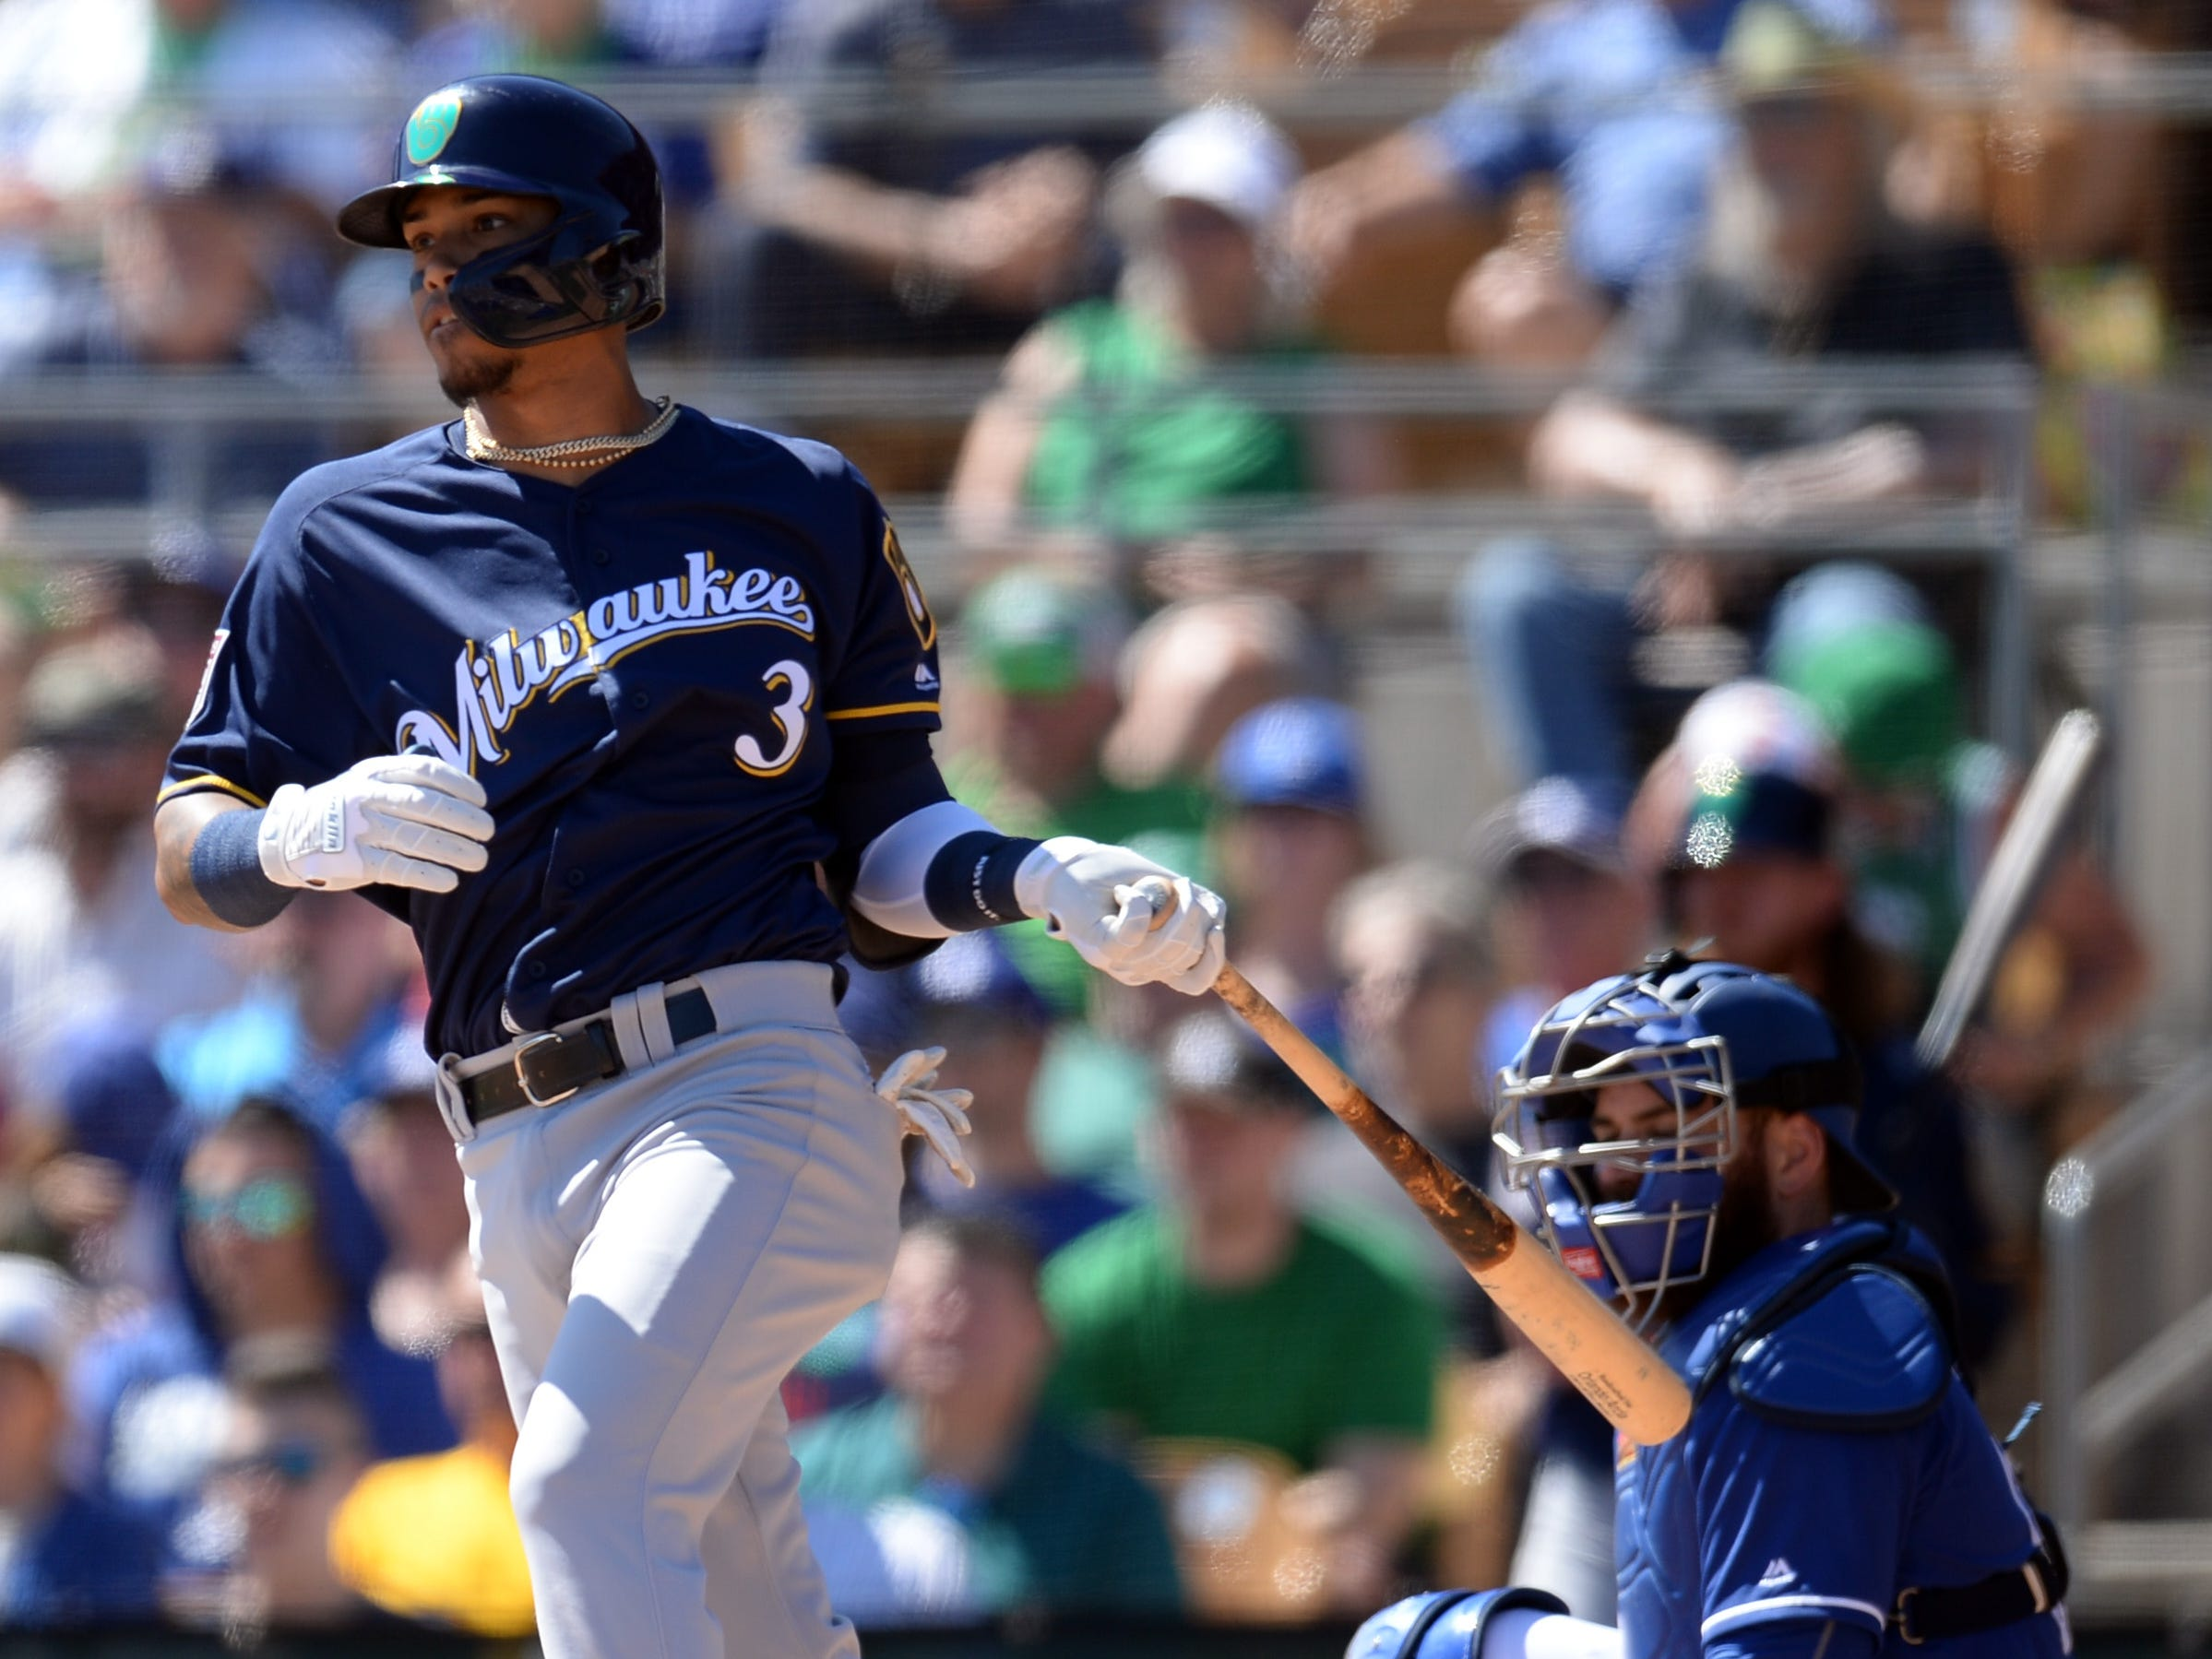 Brewers shortstop Orlando Arcia singles against the Dodgers in the second inning.